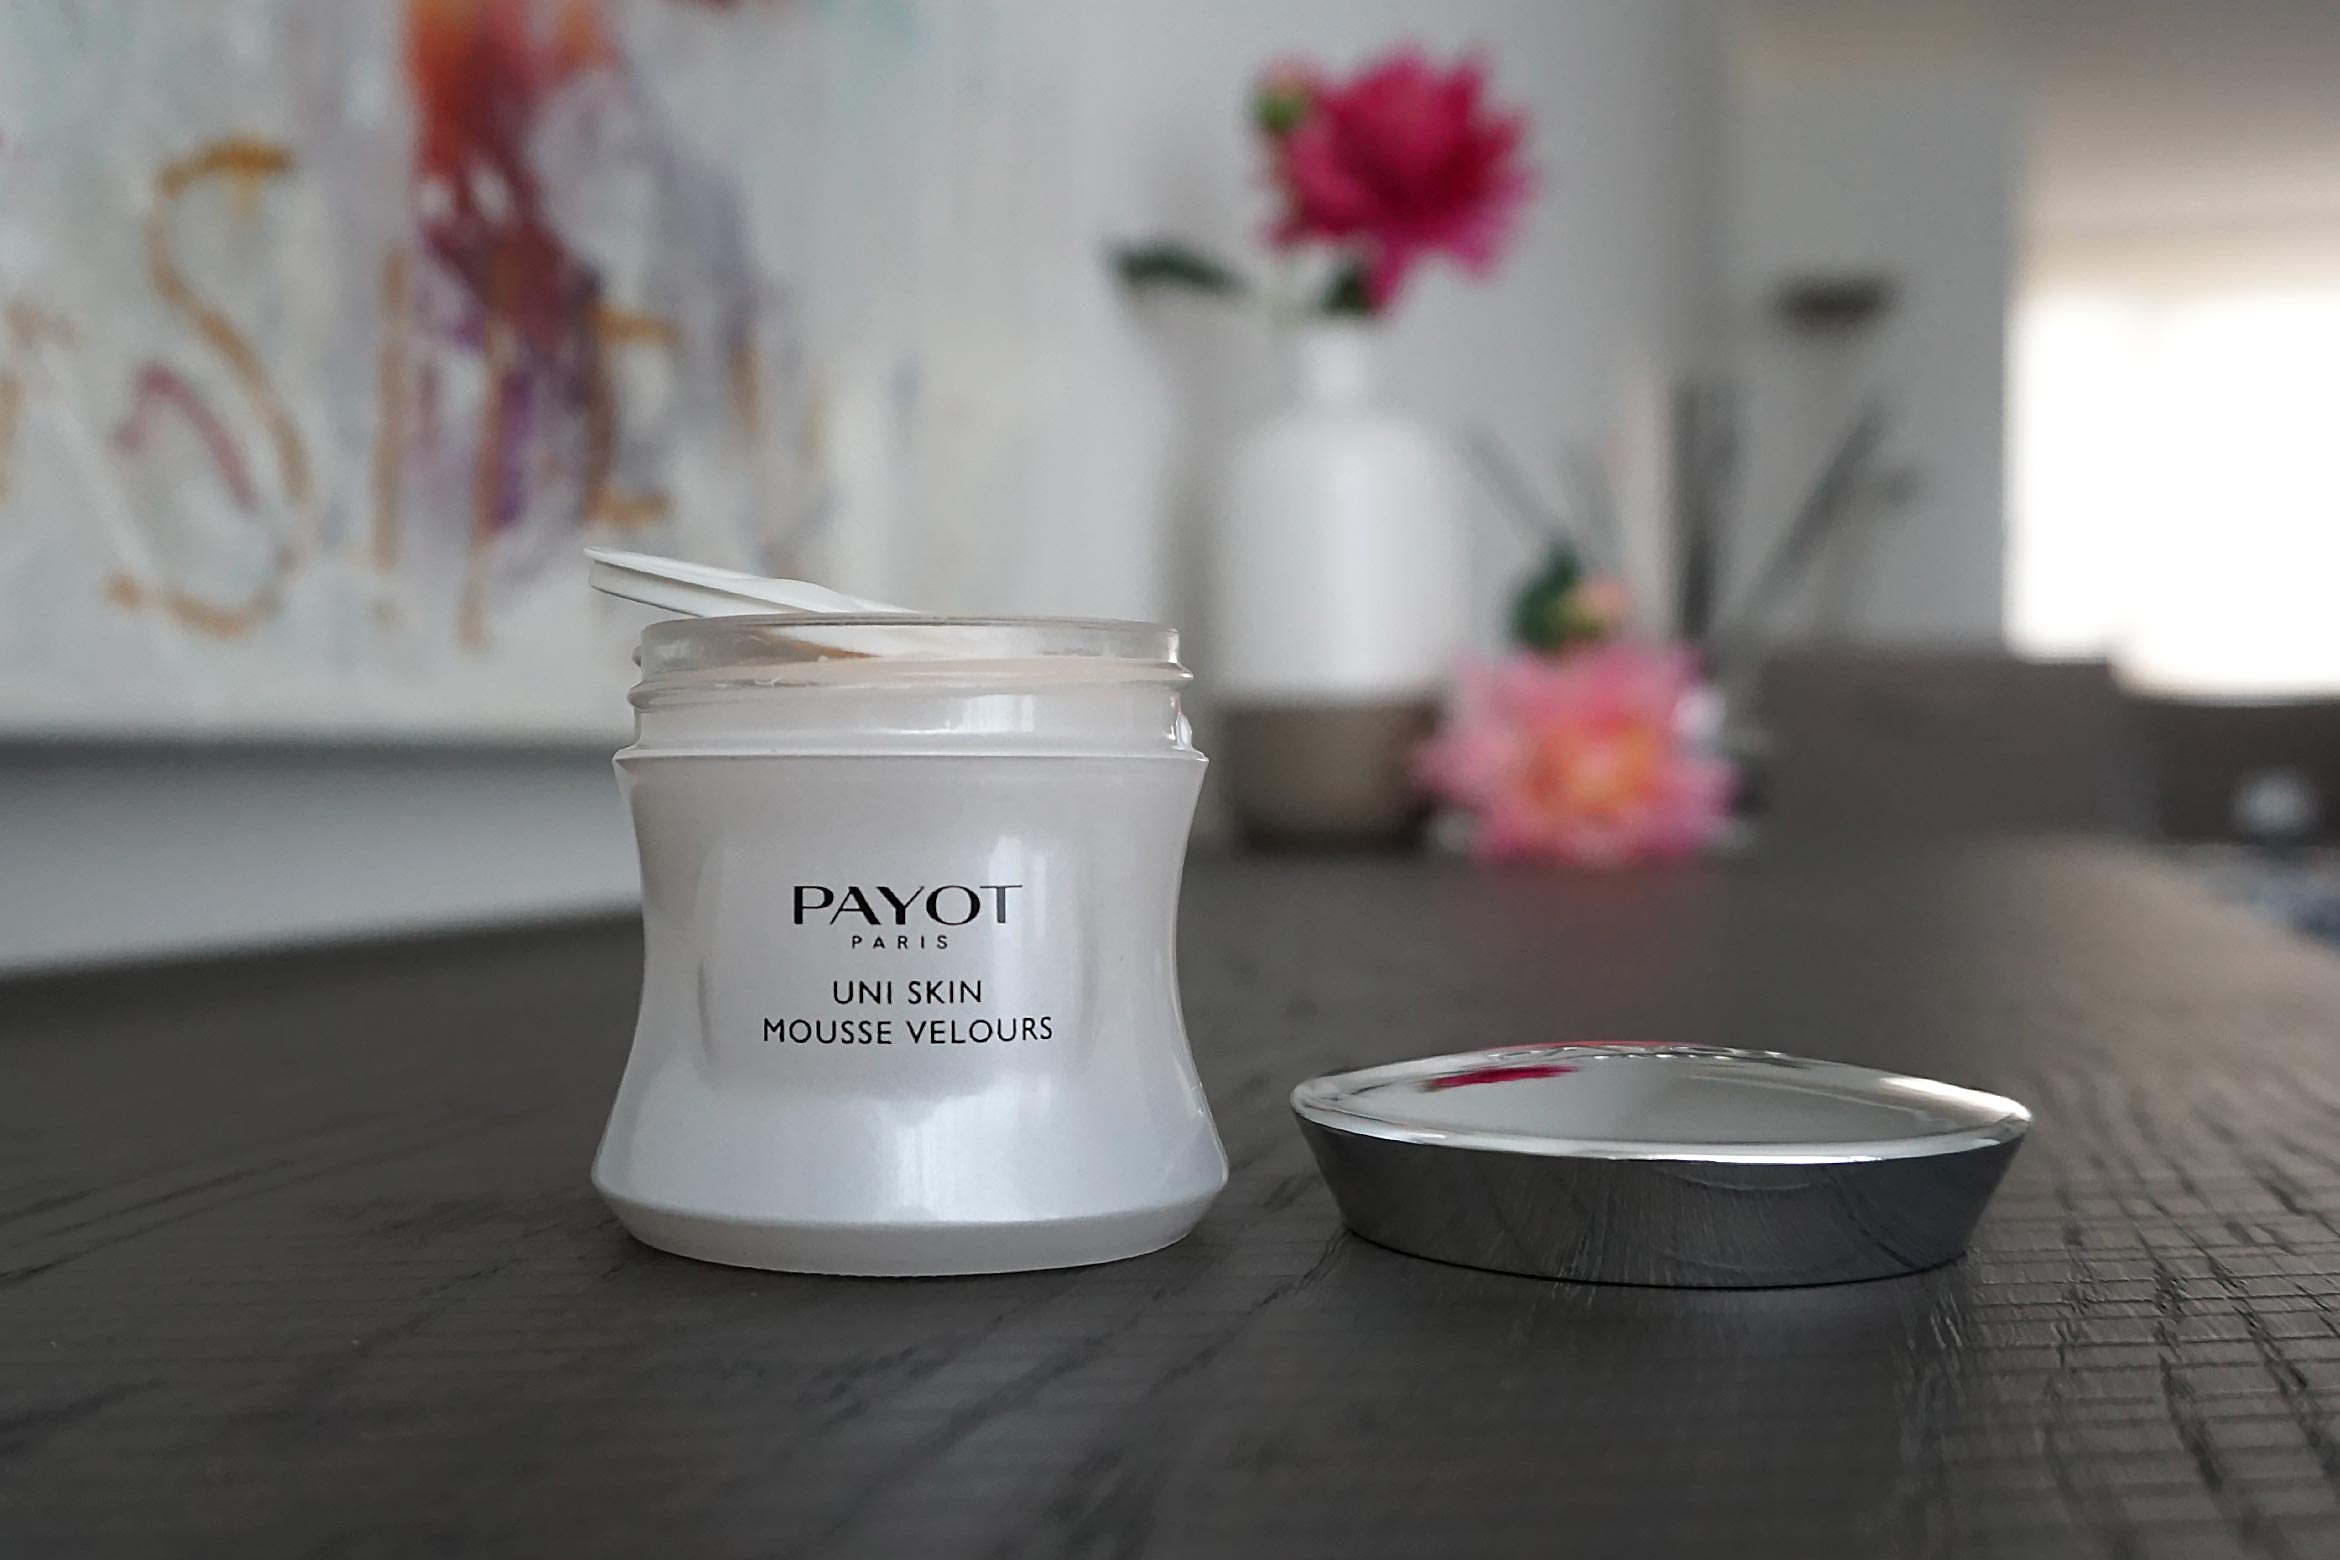 payot-uni-skin-mousse-velours-review-4